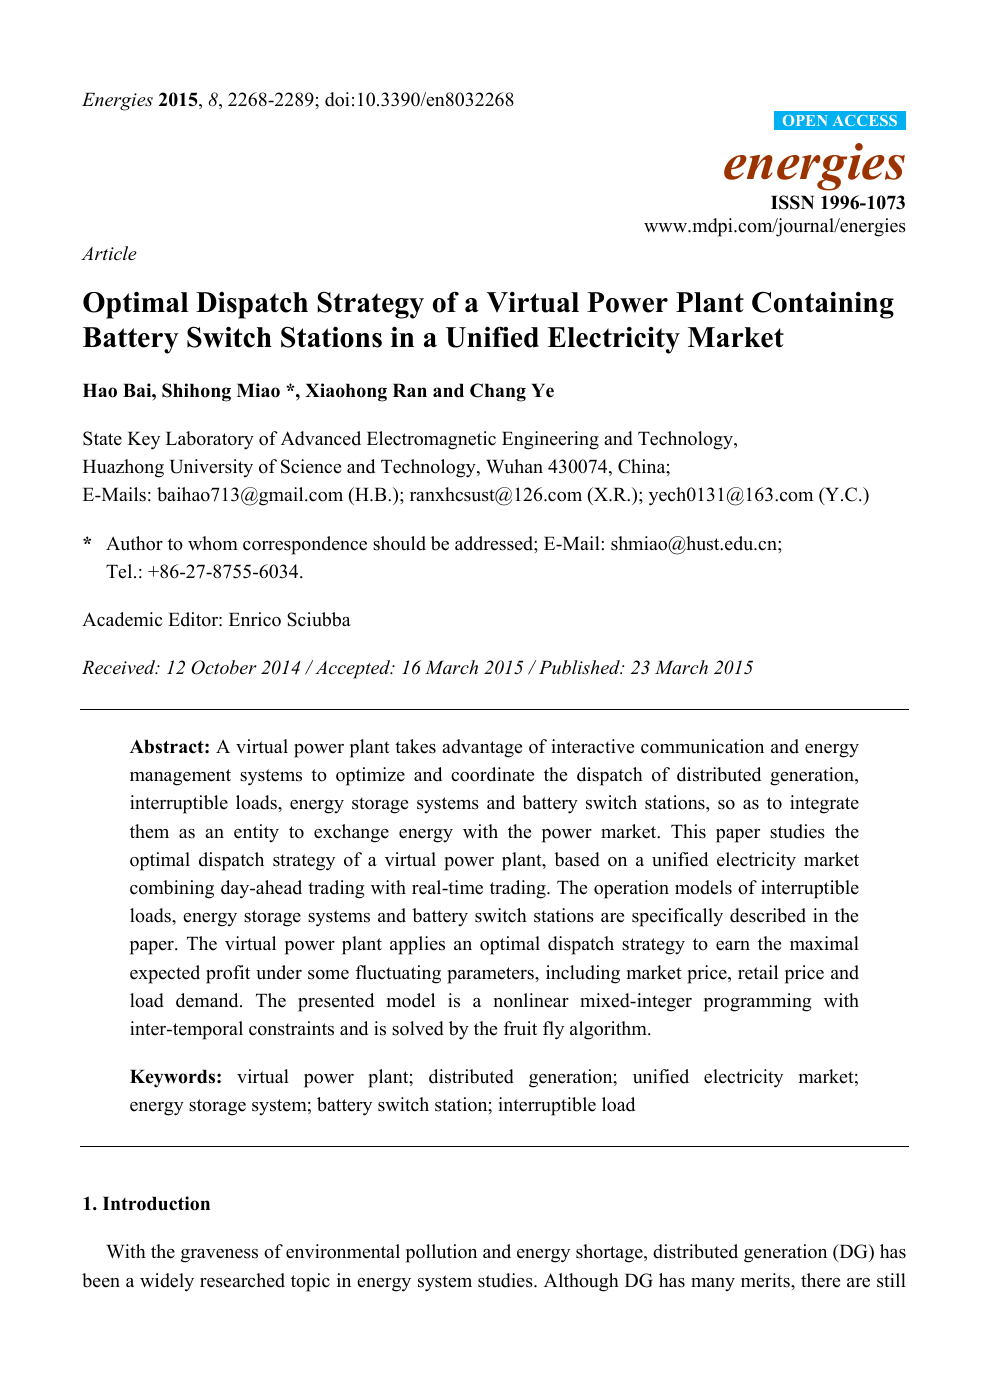 Optimal Dispatch Strategy of a Virtual Power Plant